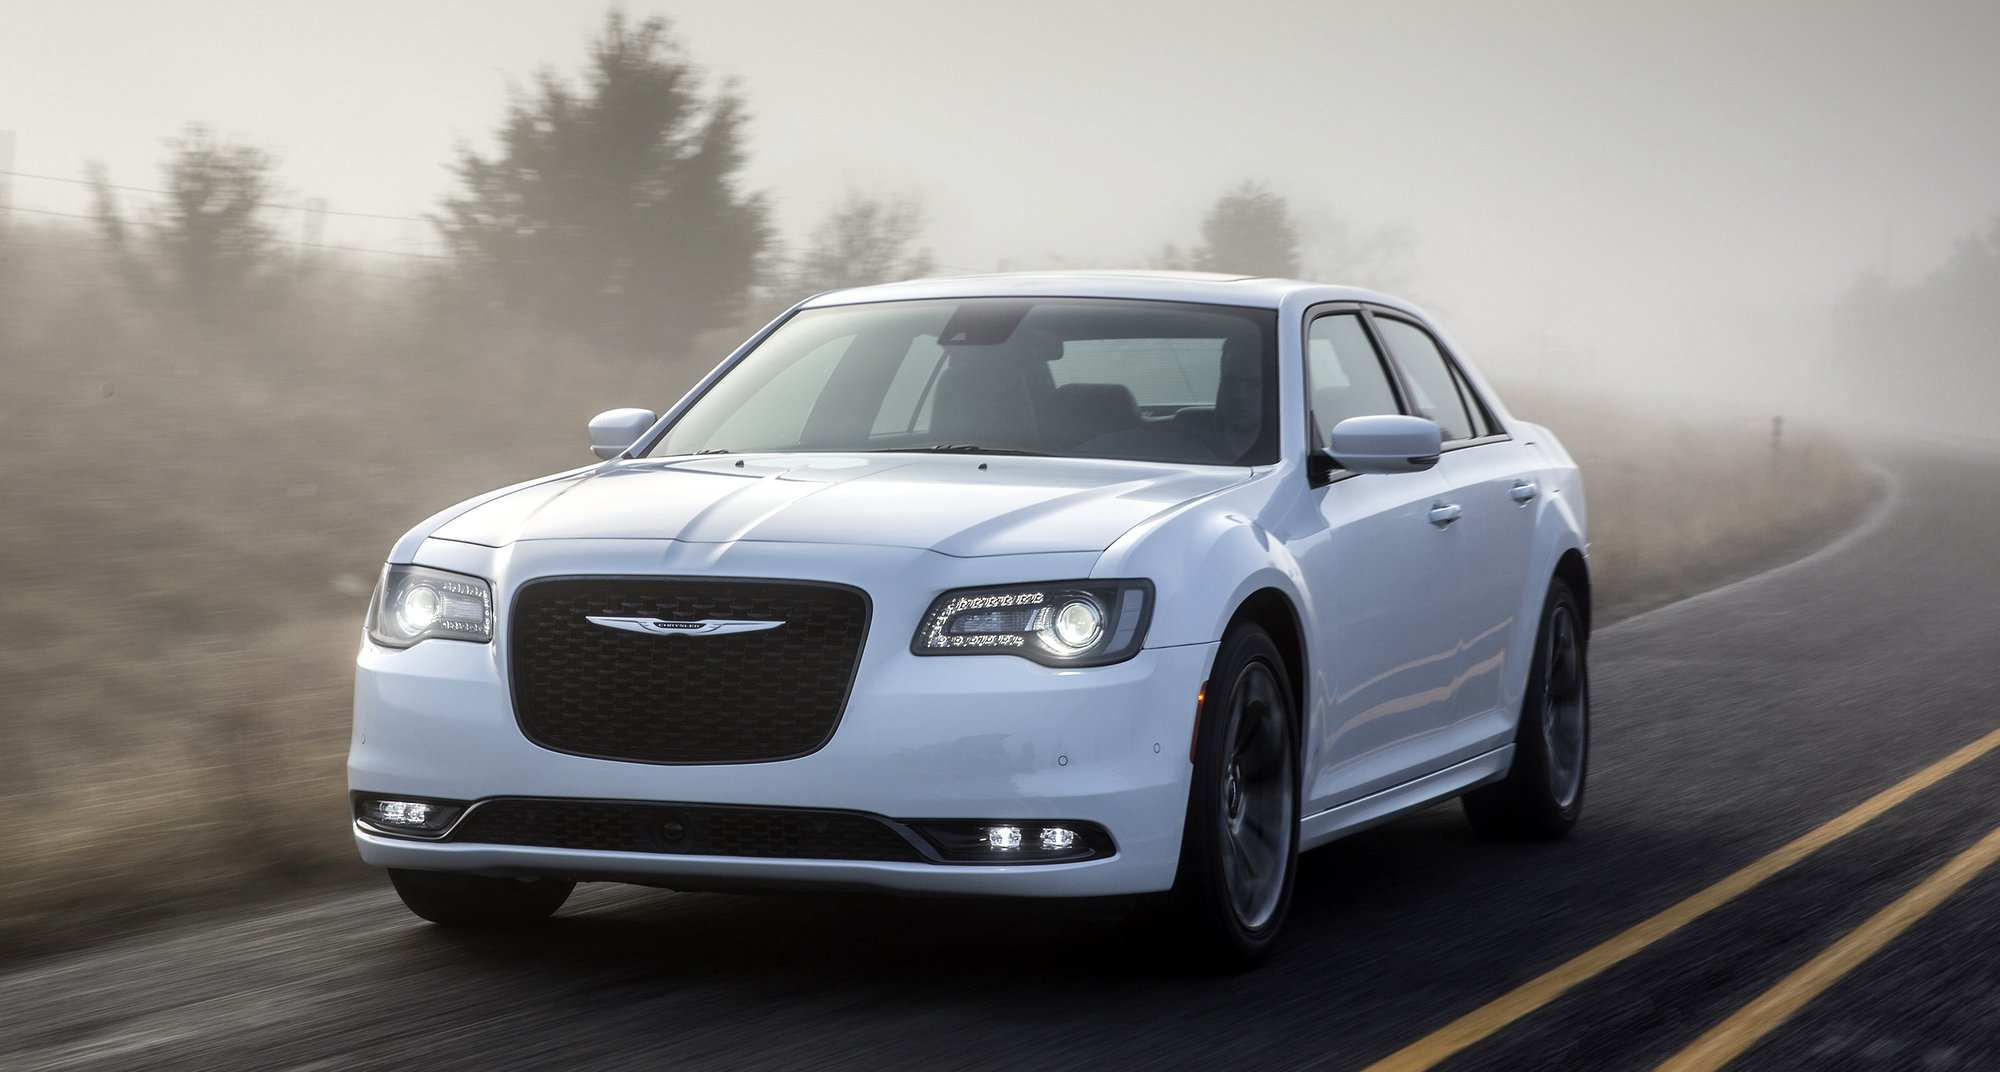 testing is autofile it international michigan review to article much our put chrysler speedway sedan car a reviews through autoweek took how of the